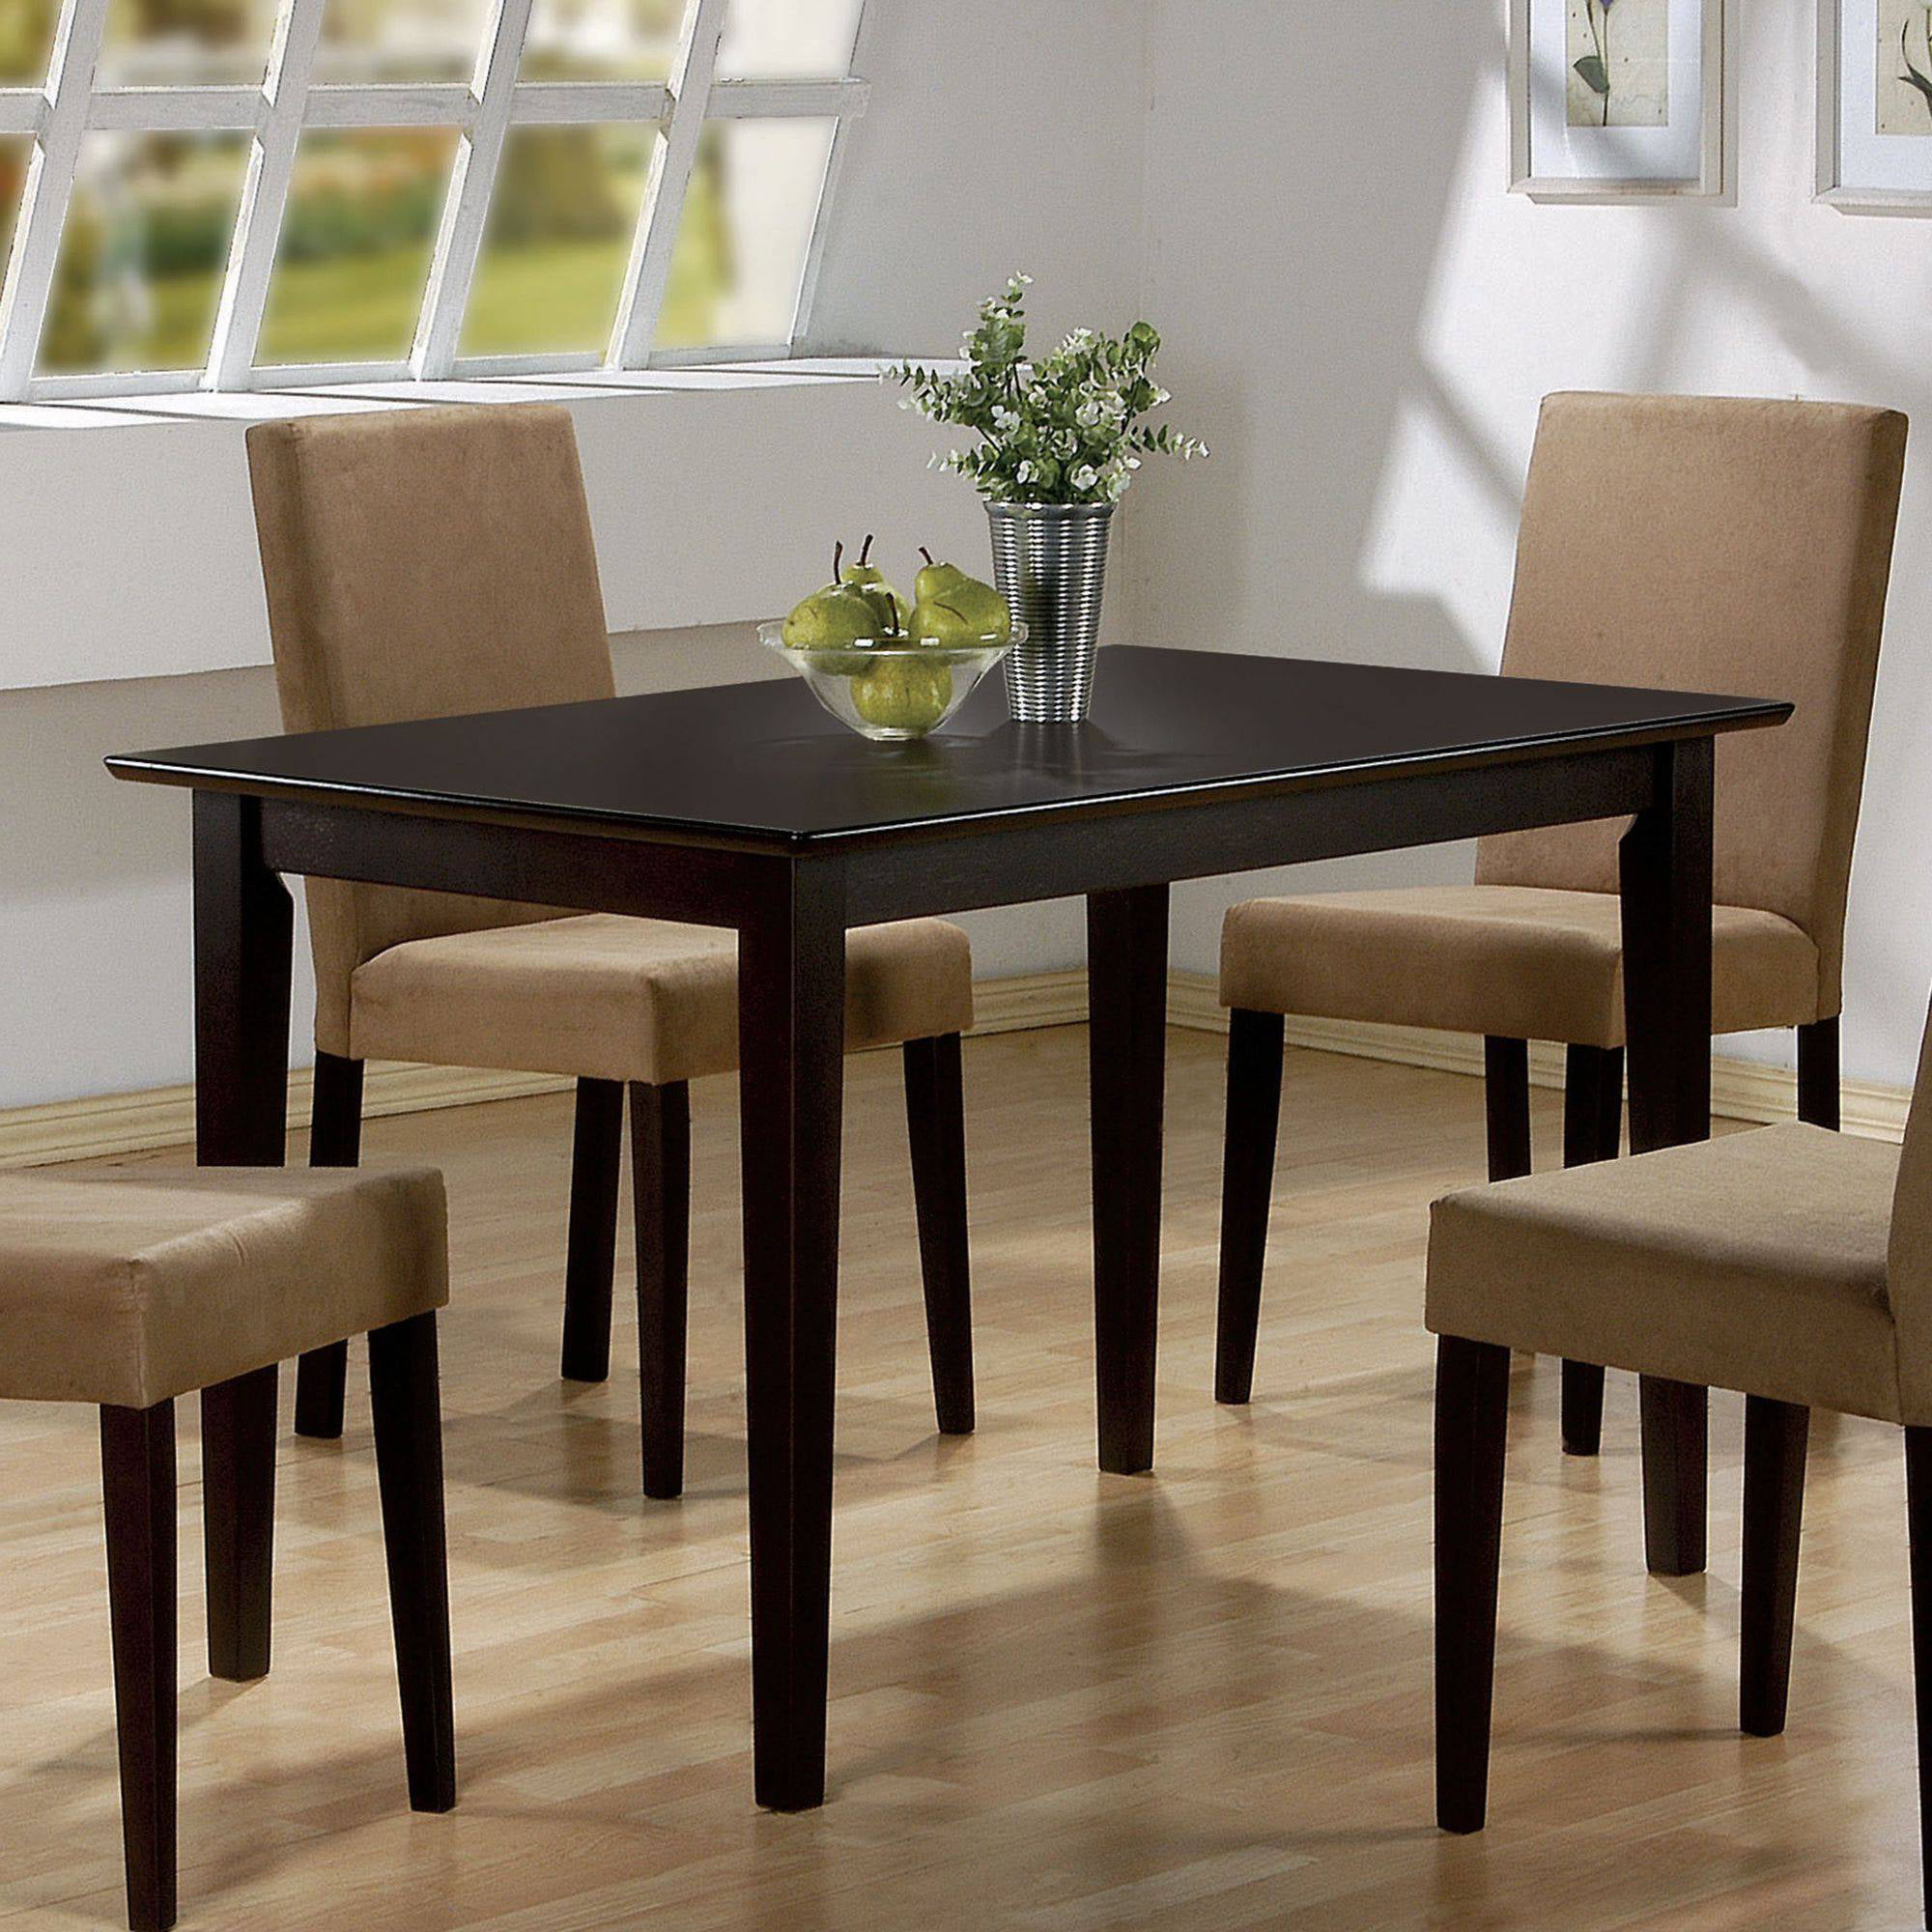 Coaster pany Clayton Dining Table Walmart